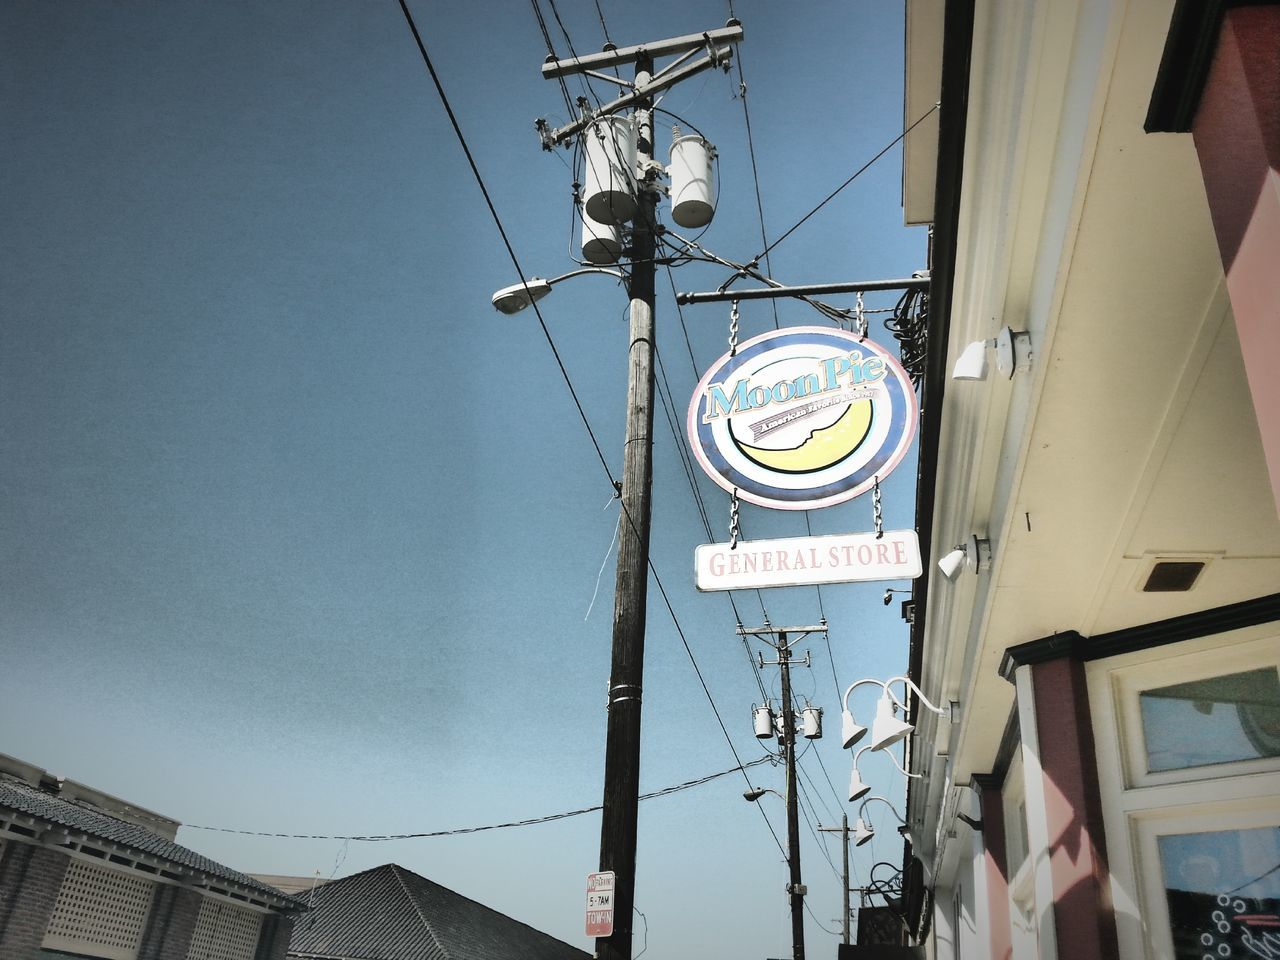 Camera 360 App Moon Pie Moon Pie General Store Moon Pies General Store General Stores General Store Photography Sign Signs SignSignEverywhereASign Pole Poles Power Pole Charleston Charleston SC Charlestonsc South Carolina South Carolina Trip South Carolina